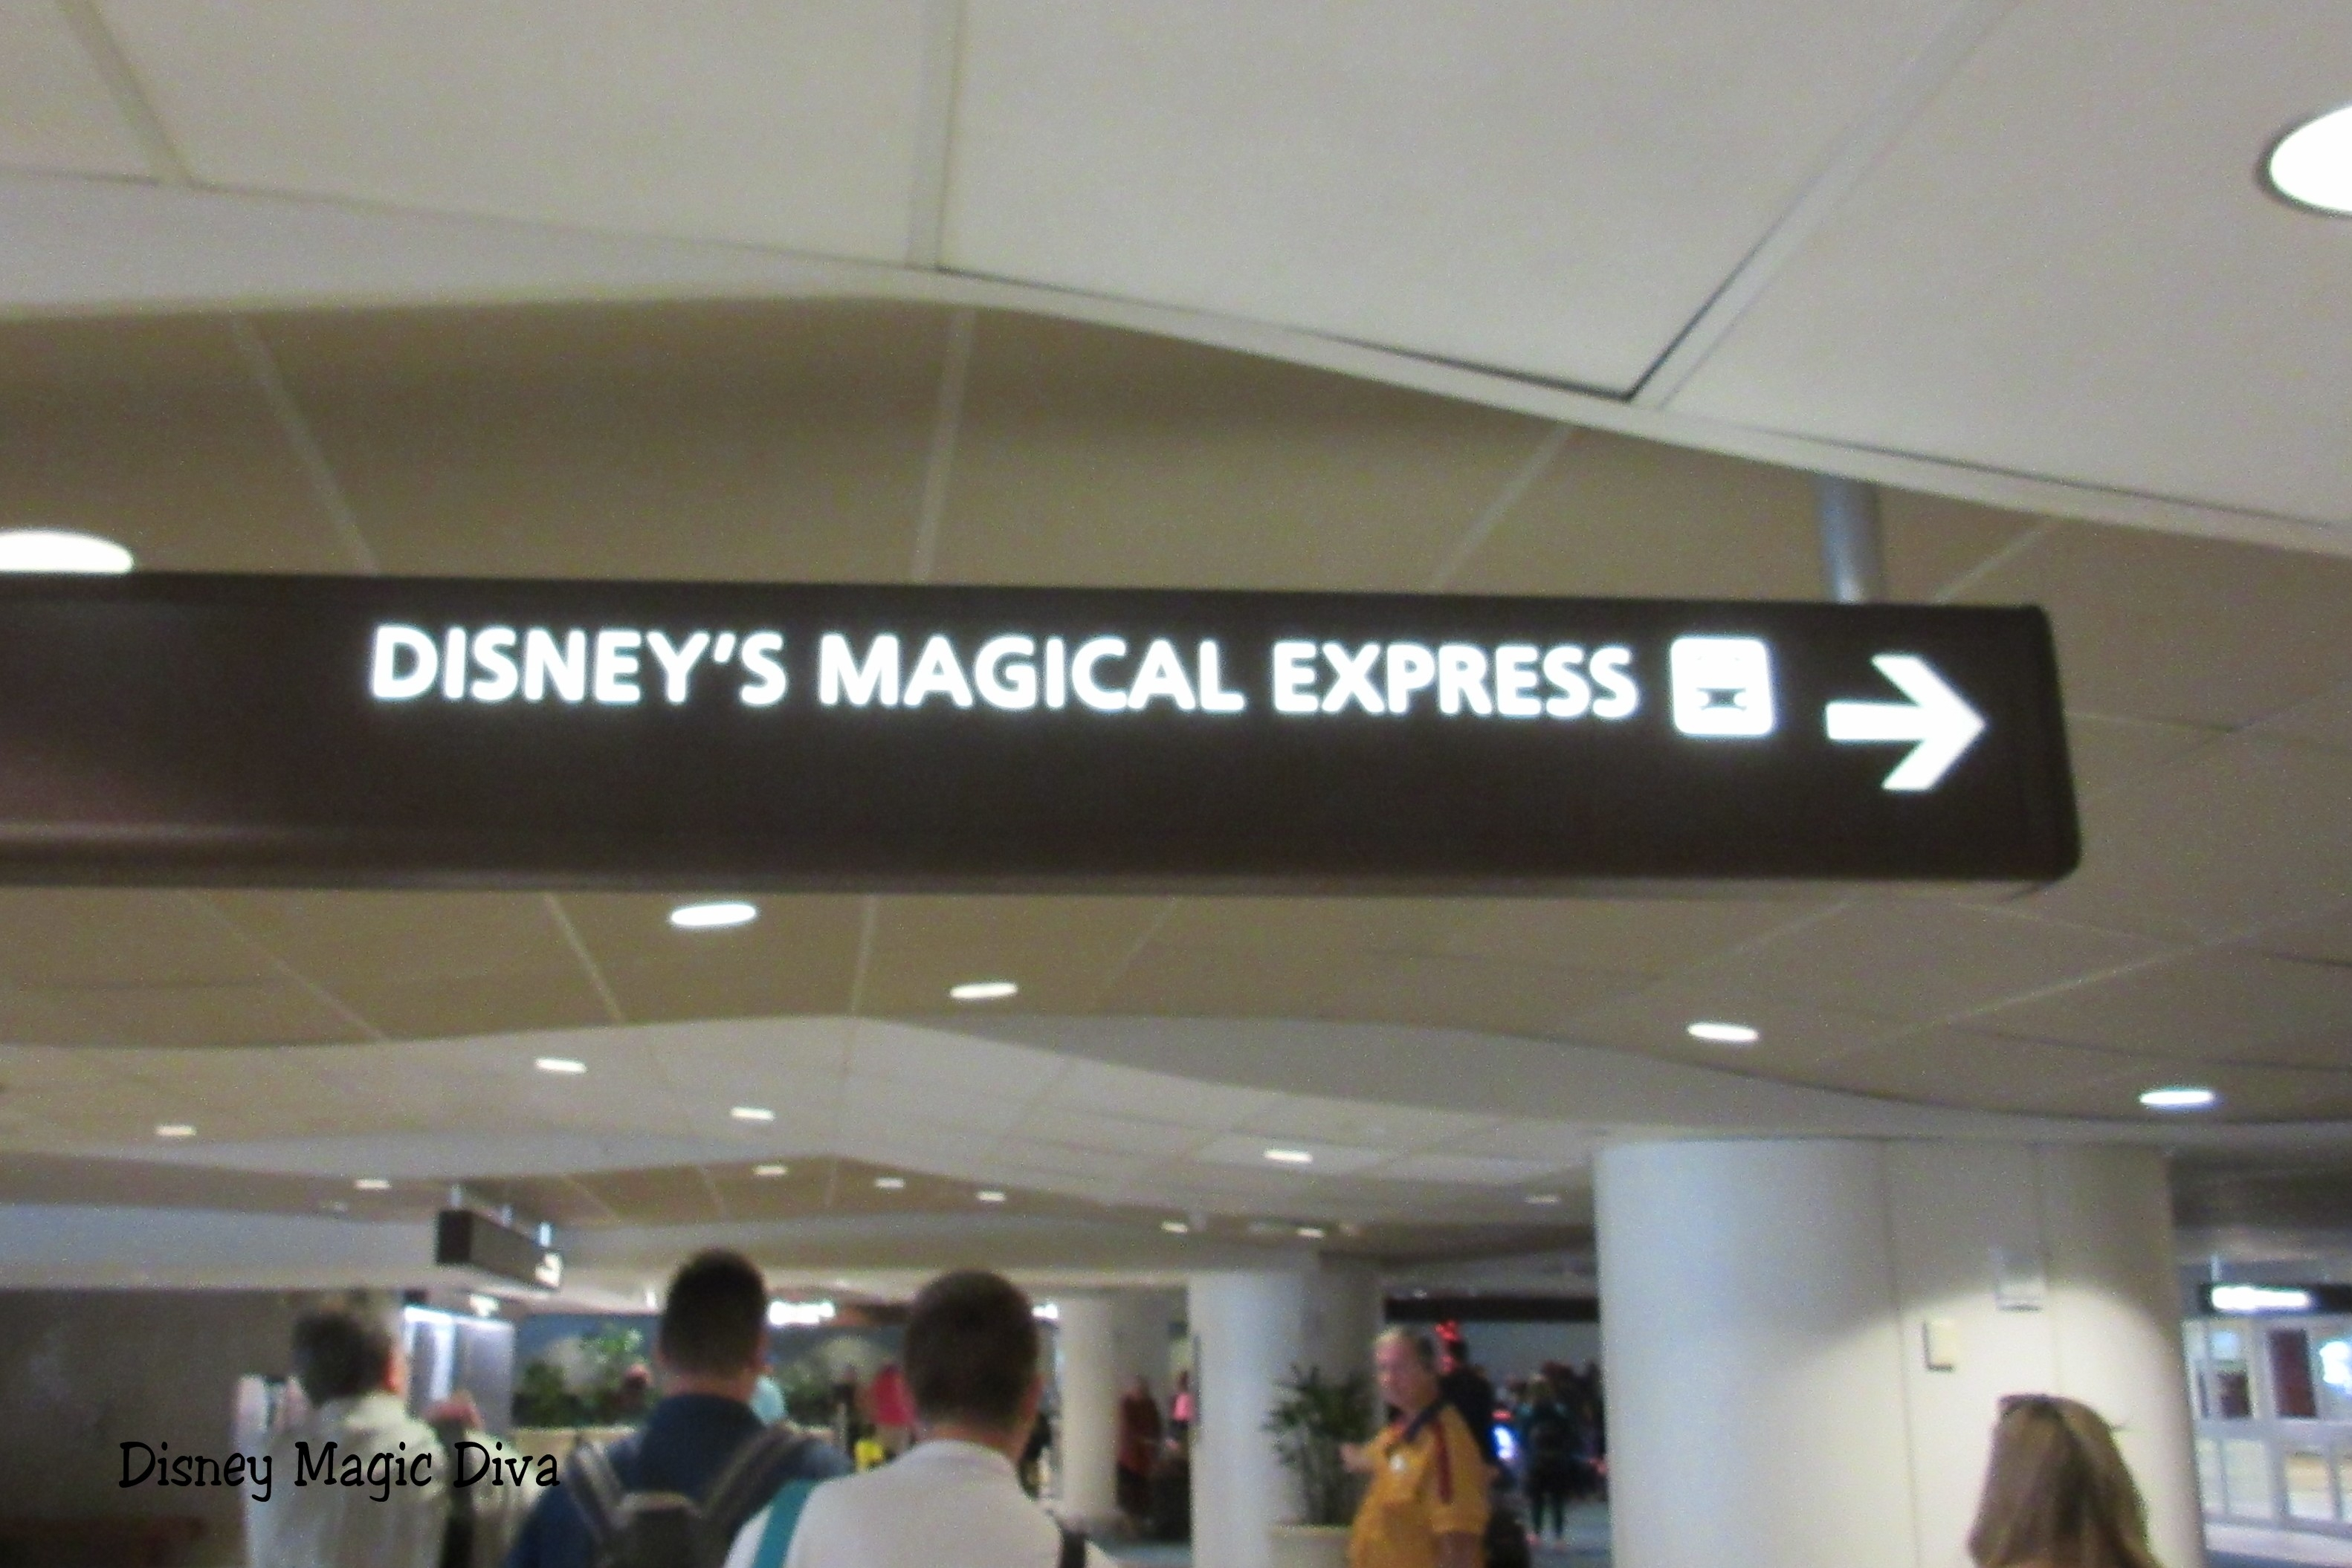 Disney's Magical Express: Your Complimentary Carriage Ride to the World